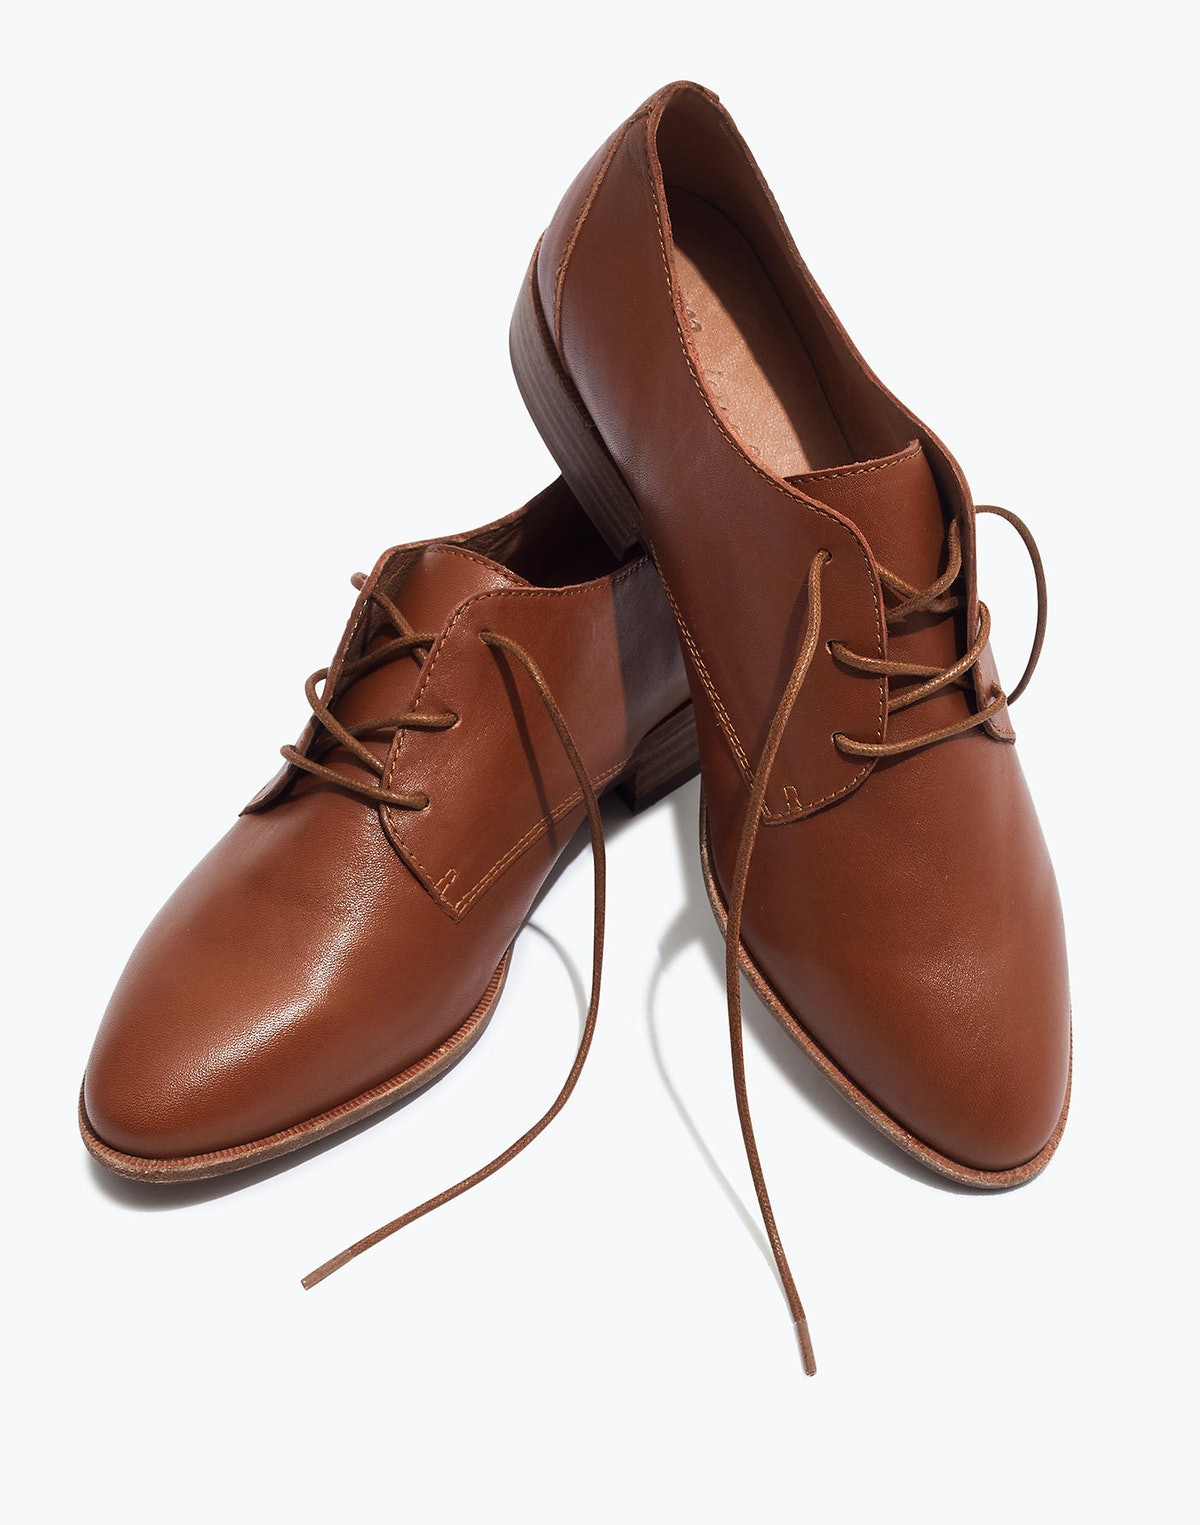 The Frances Oxford